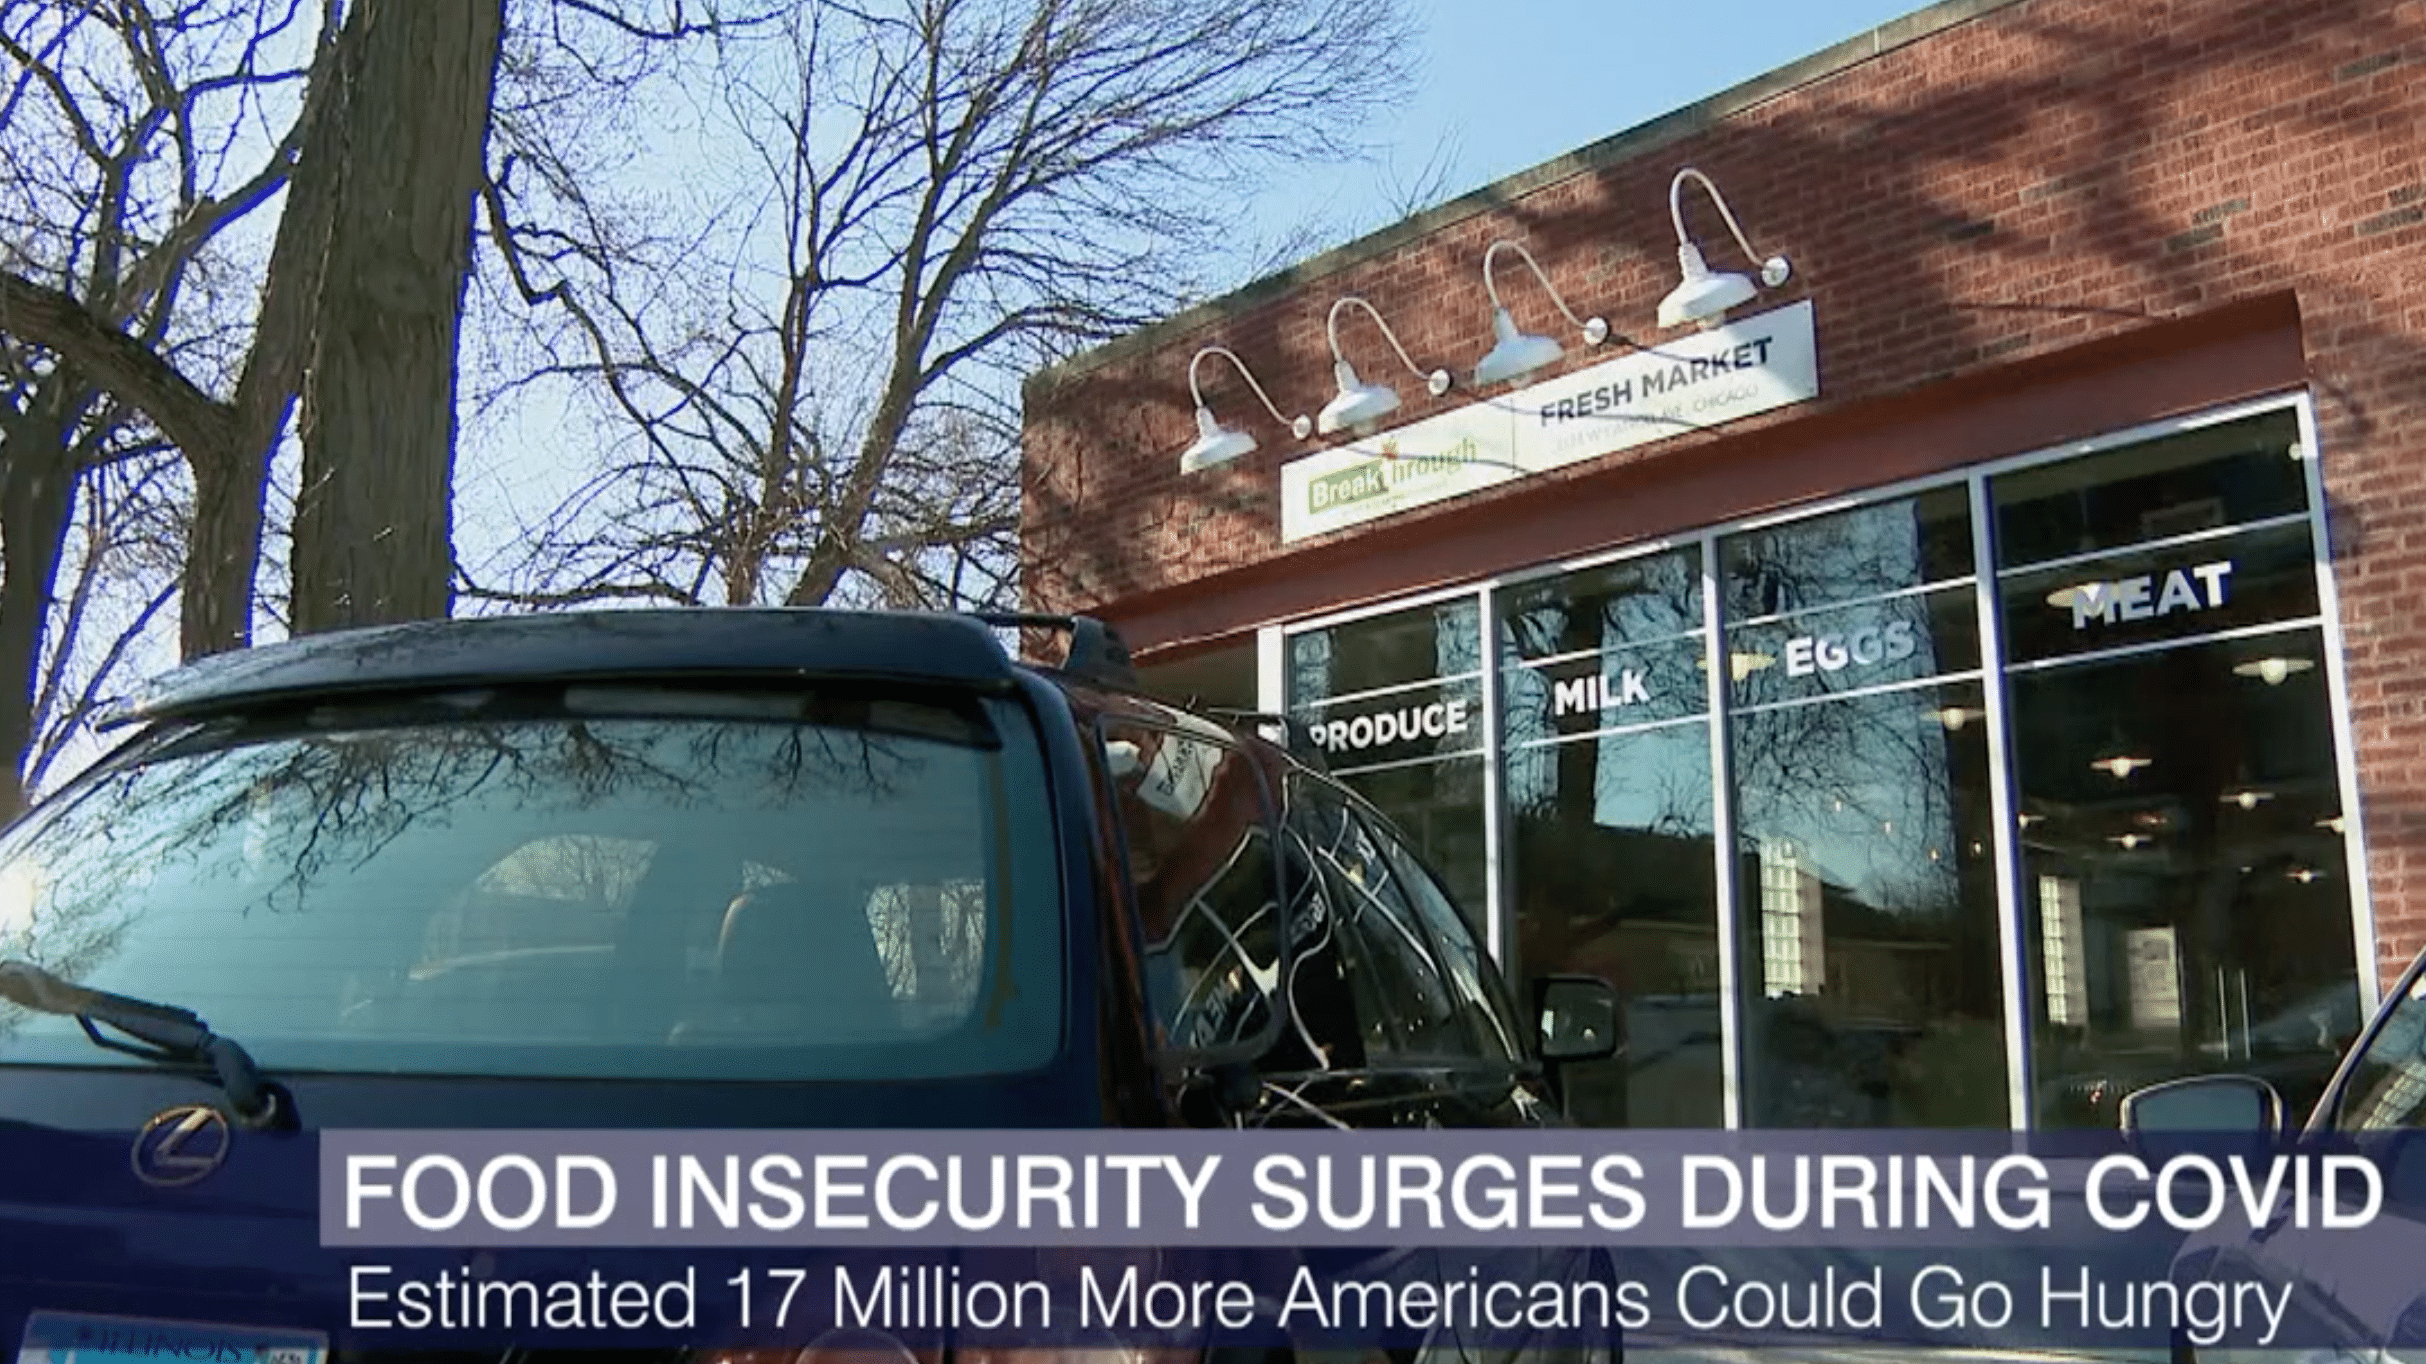 Food Insecurity Still High Amid Pandemic in City, Suburbs and Rural Areas Alike 1